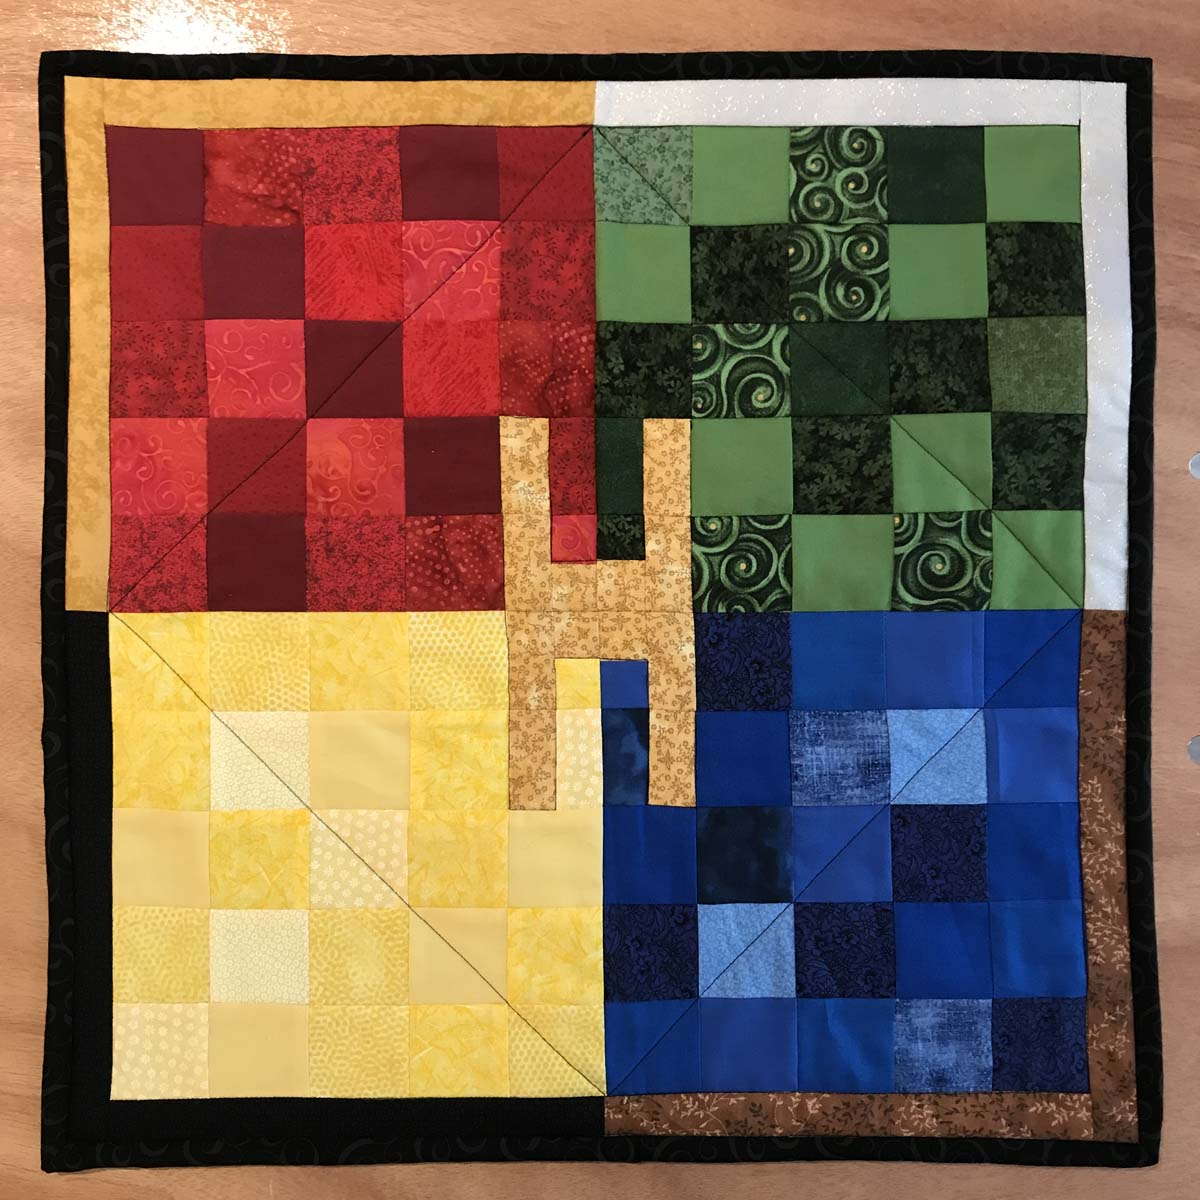 Decorative quilted wall hanging in primary colors using small blocks.